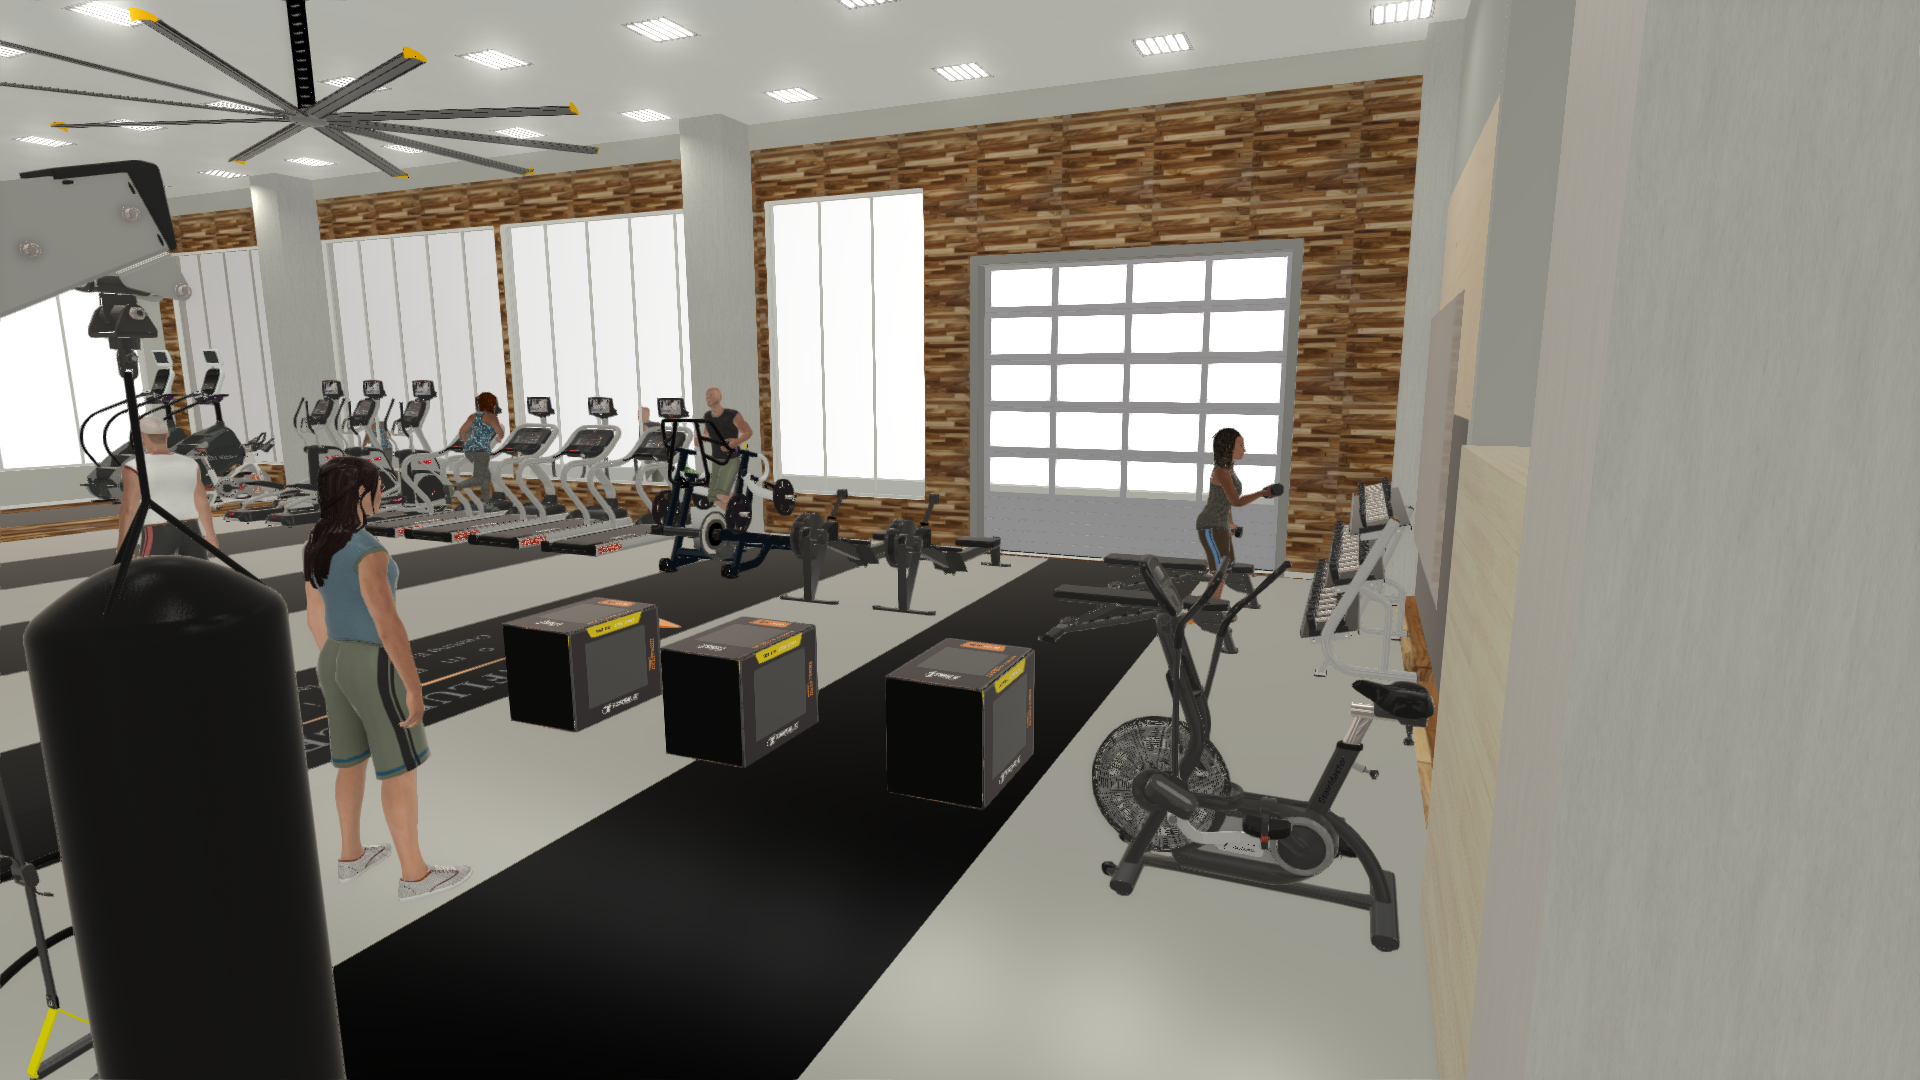 Fitness center design sport and fitness inc.